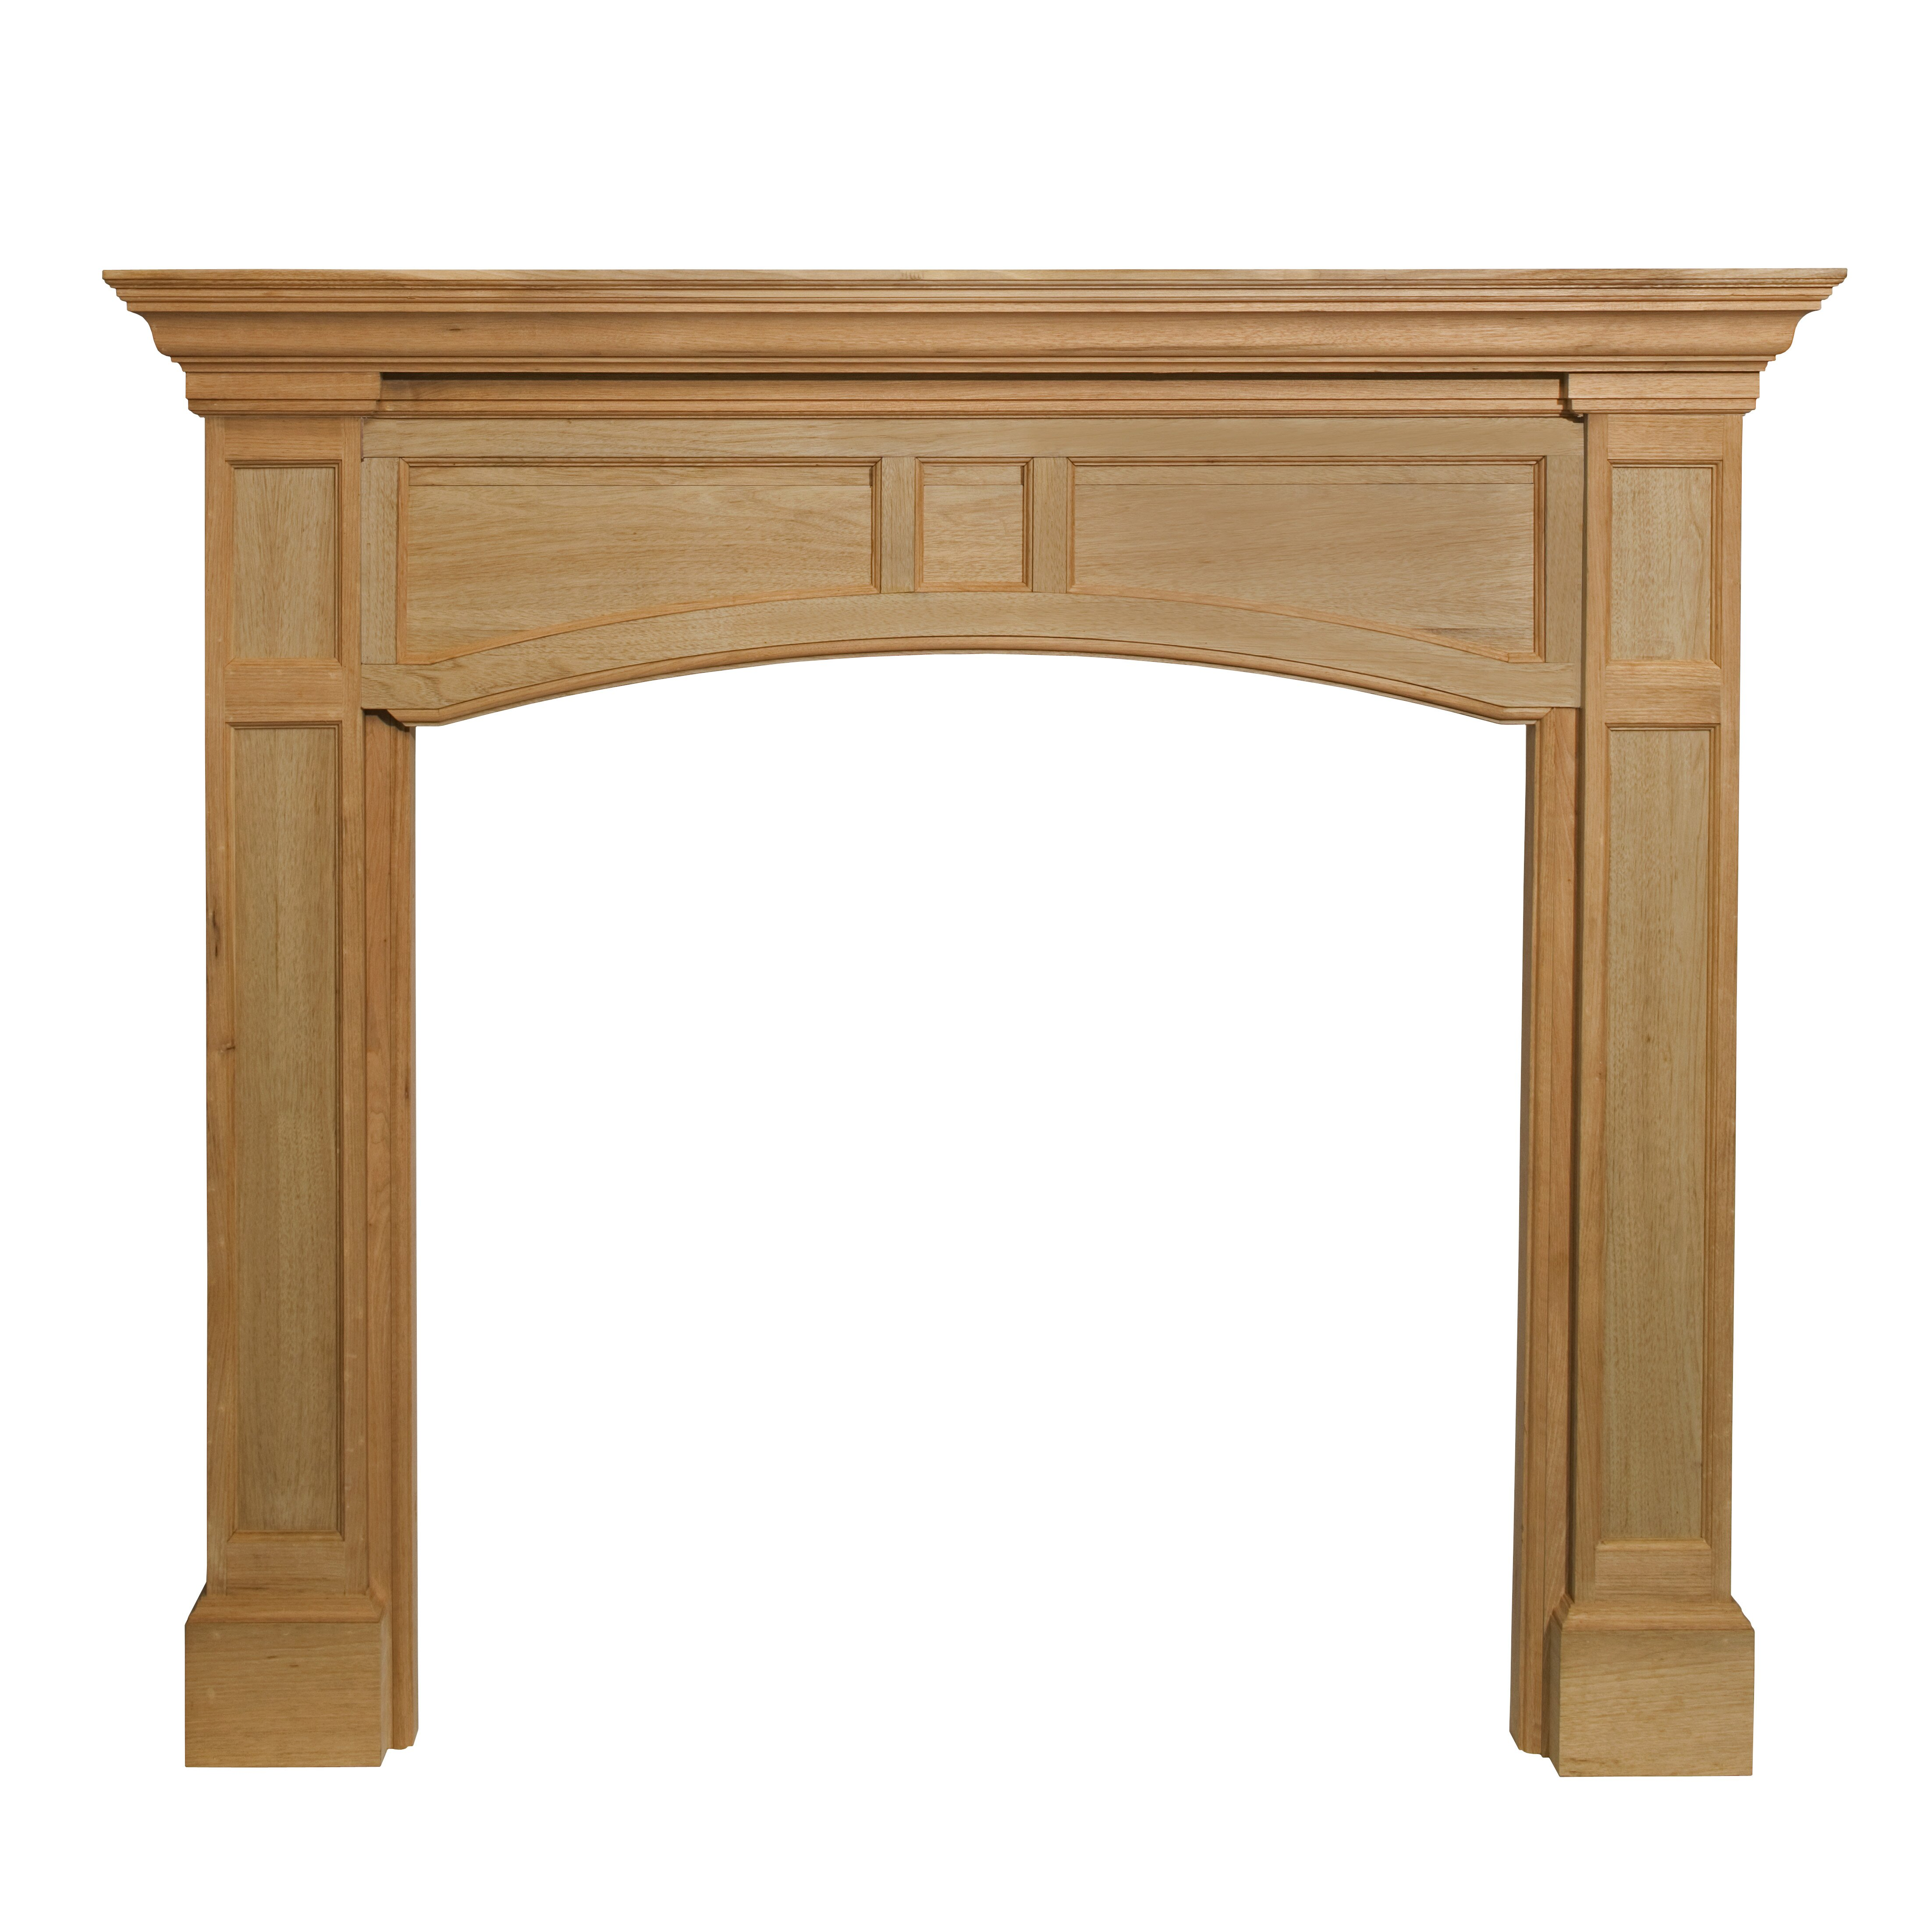 Pearl Mantels The Vance Fireplace Mantel Surround